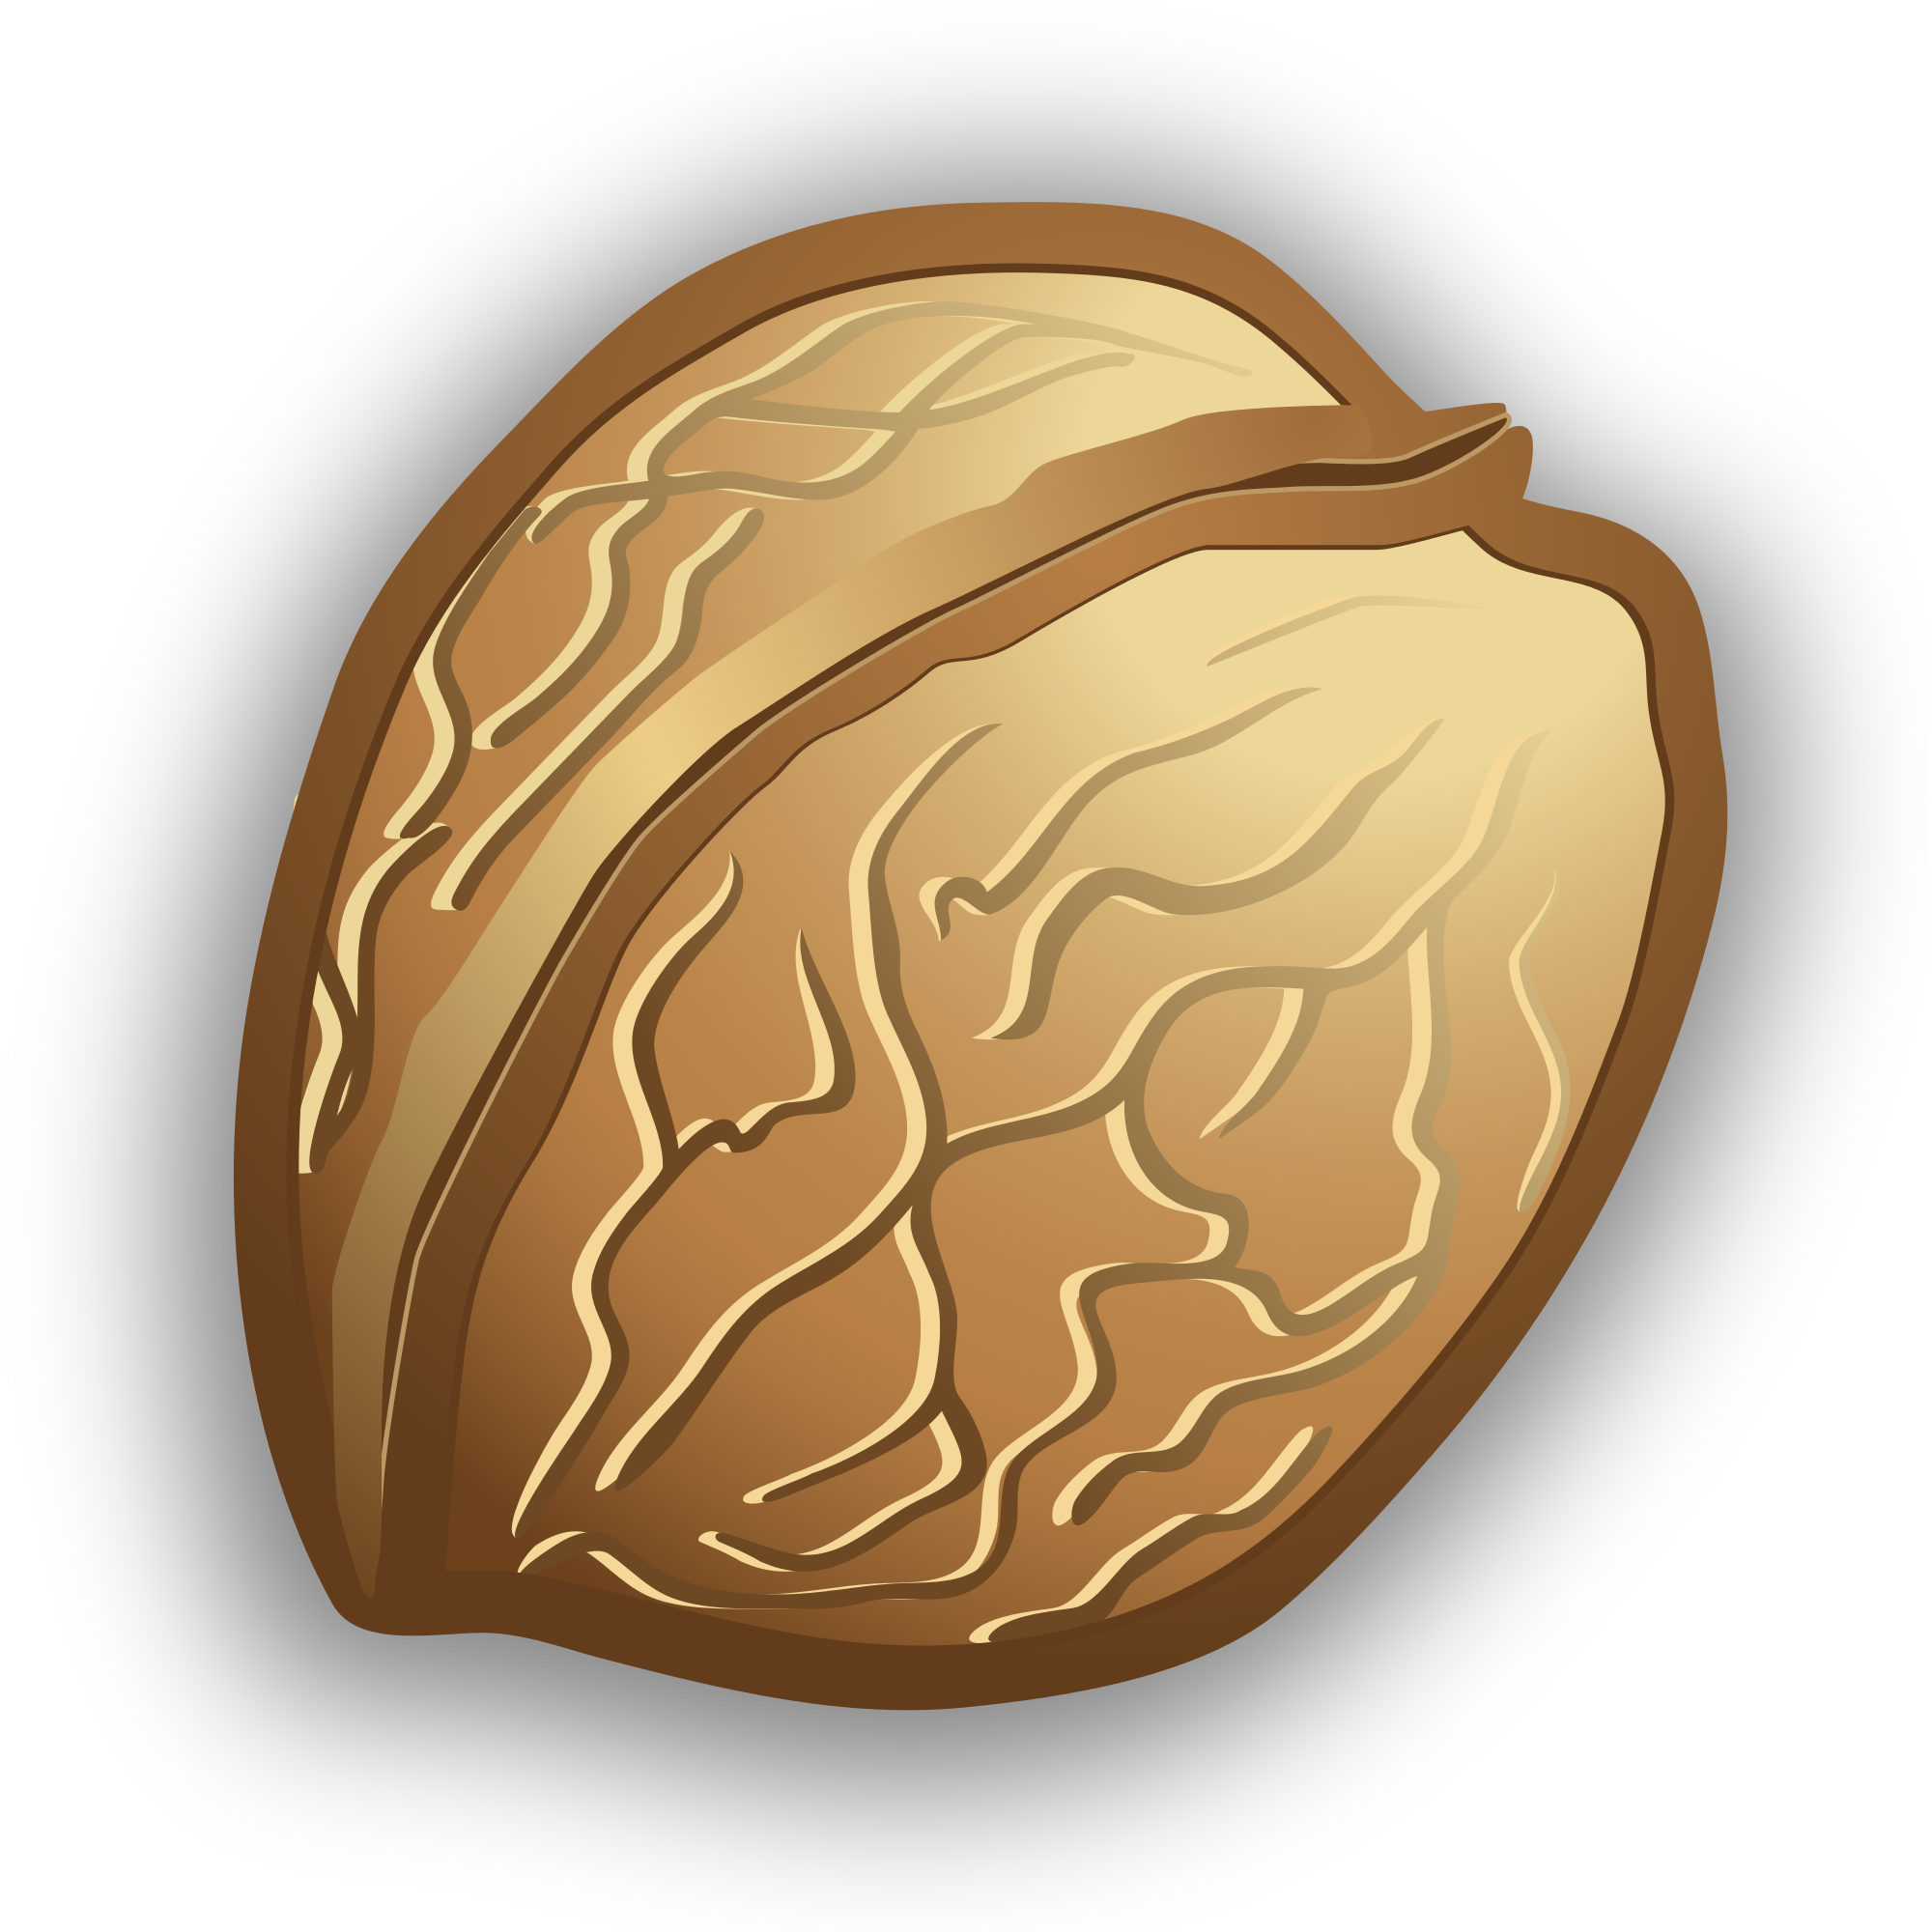 New SVG image - Walnut PNG